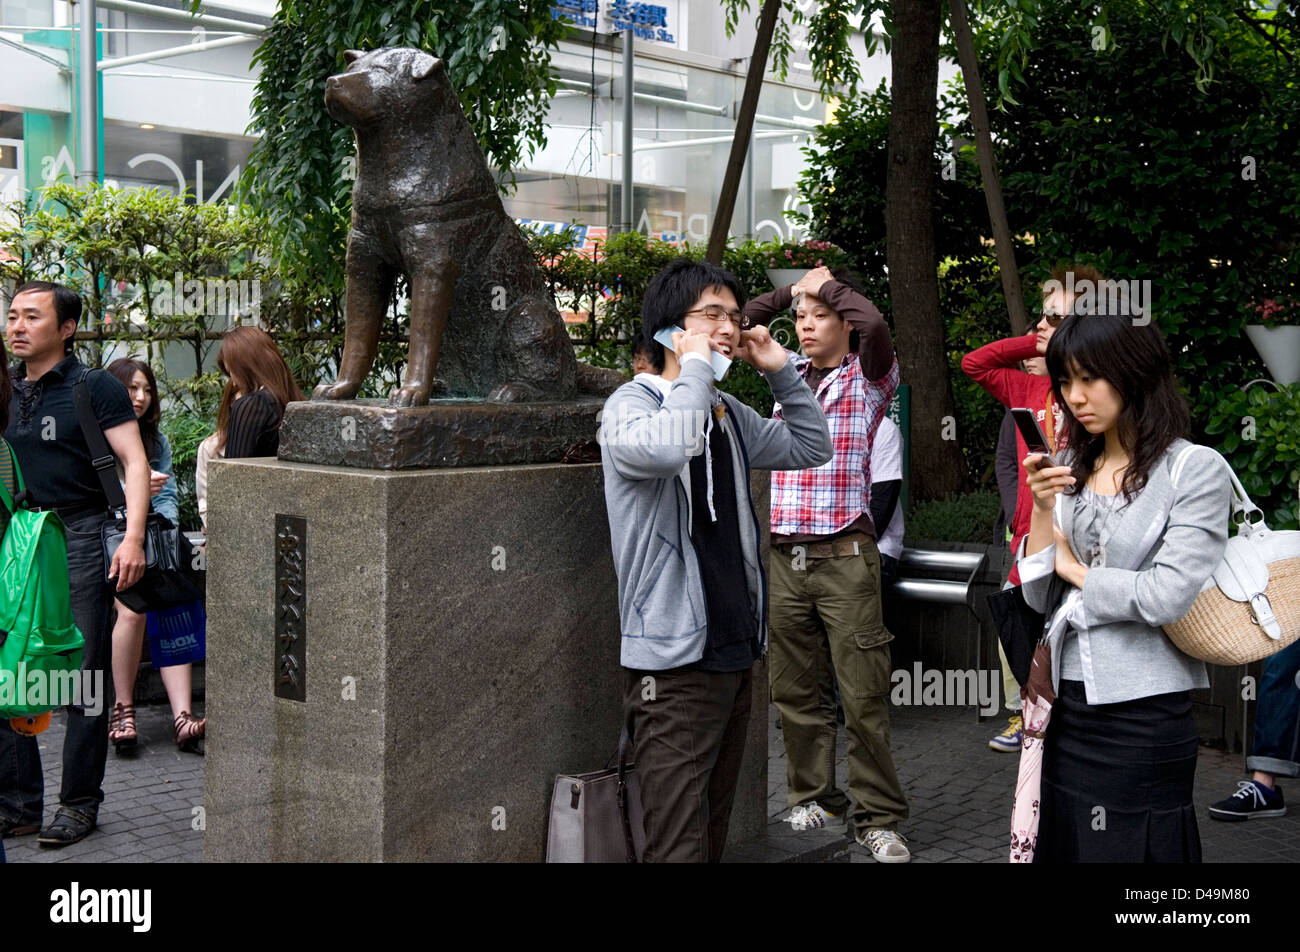 The famous 'faithful dog' statue of Chuken Hachiko in Shibuya, Tokyo, Japan is a popular meeting place - Stock Image